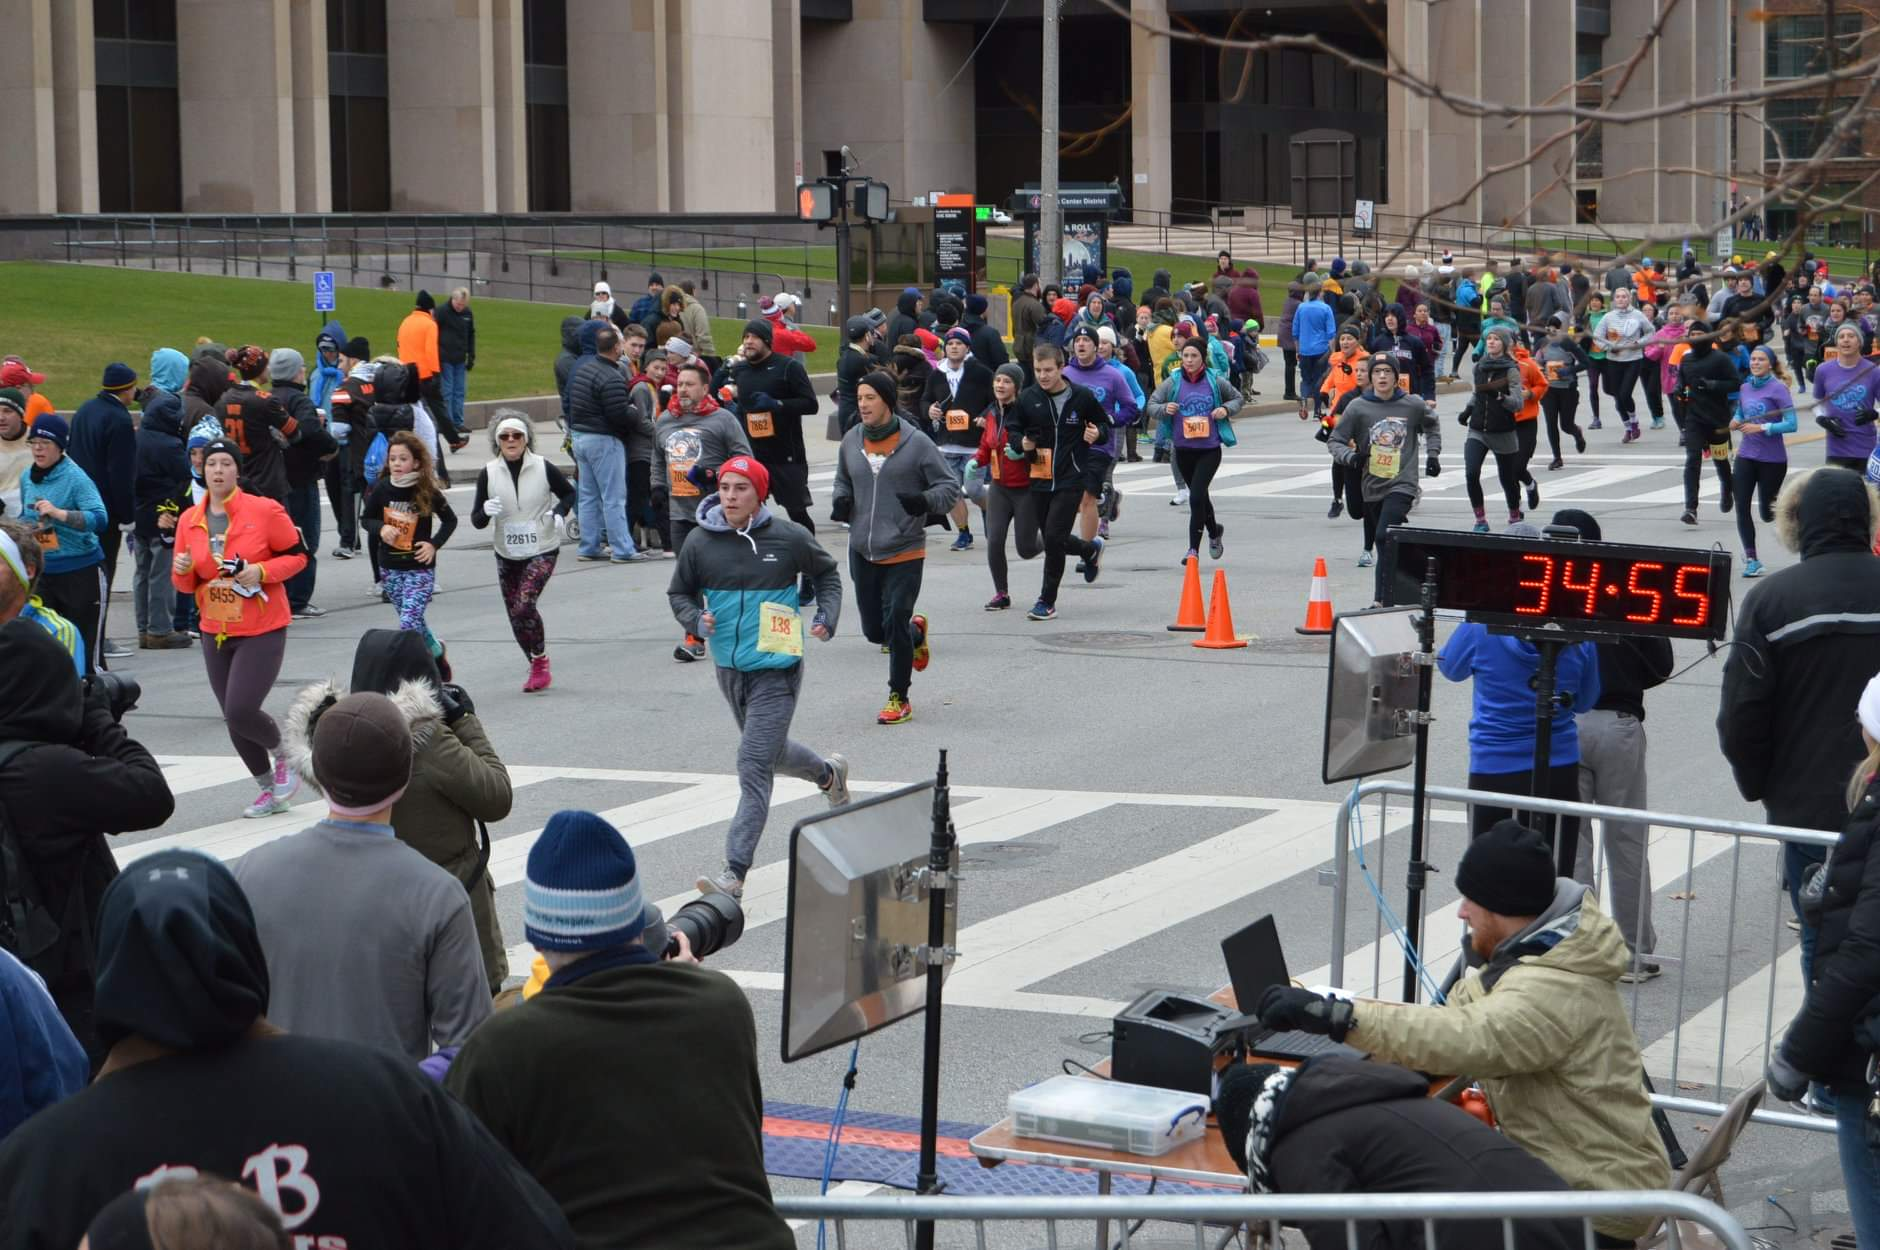 Crossing the finish line at the Turkey Trot